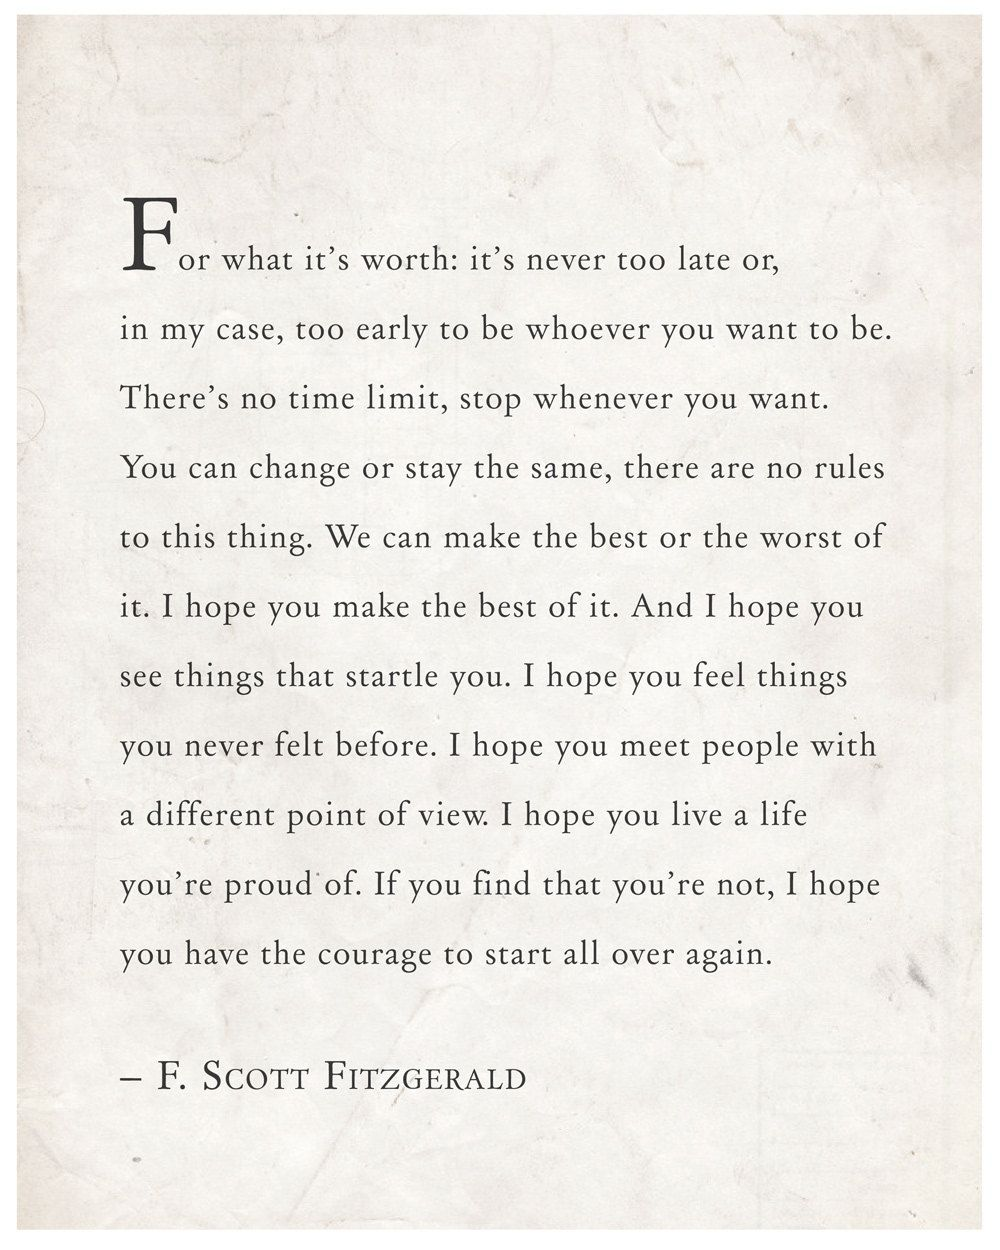 Love Quotes F Scott Fitzgerald Fscott Fitzgerald Wise Words That Read For What It's Worth